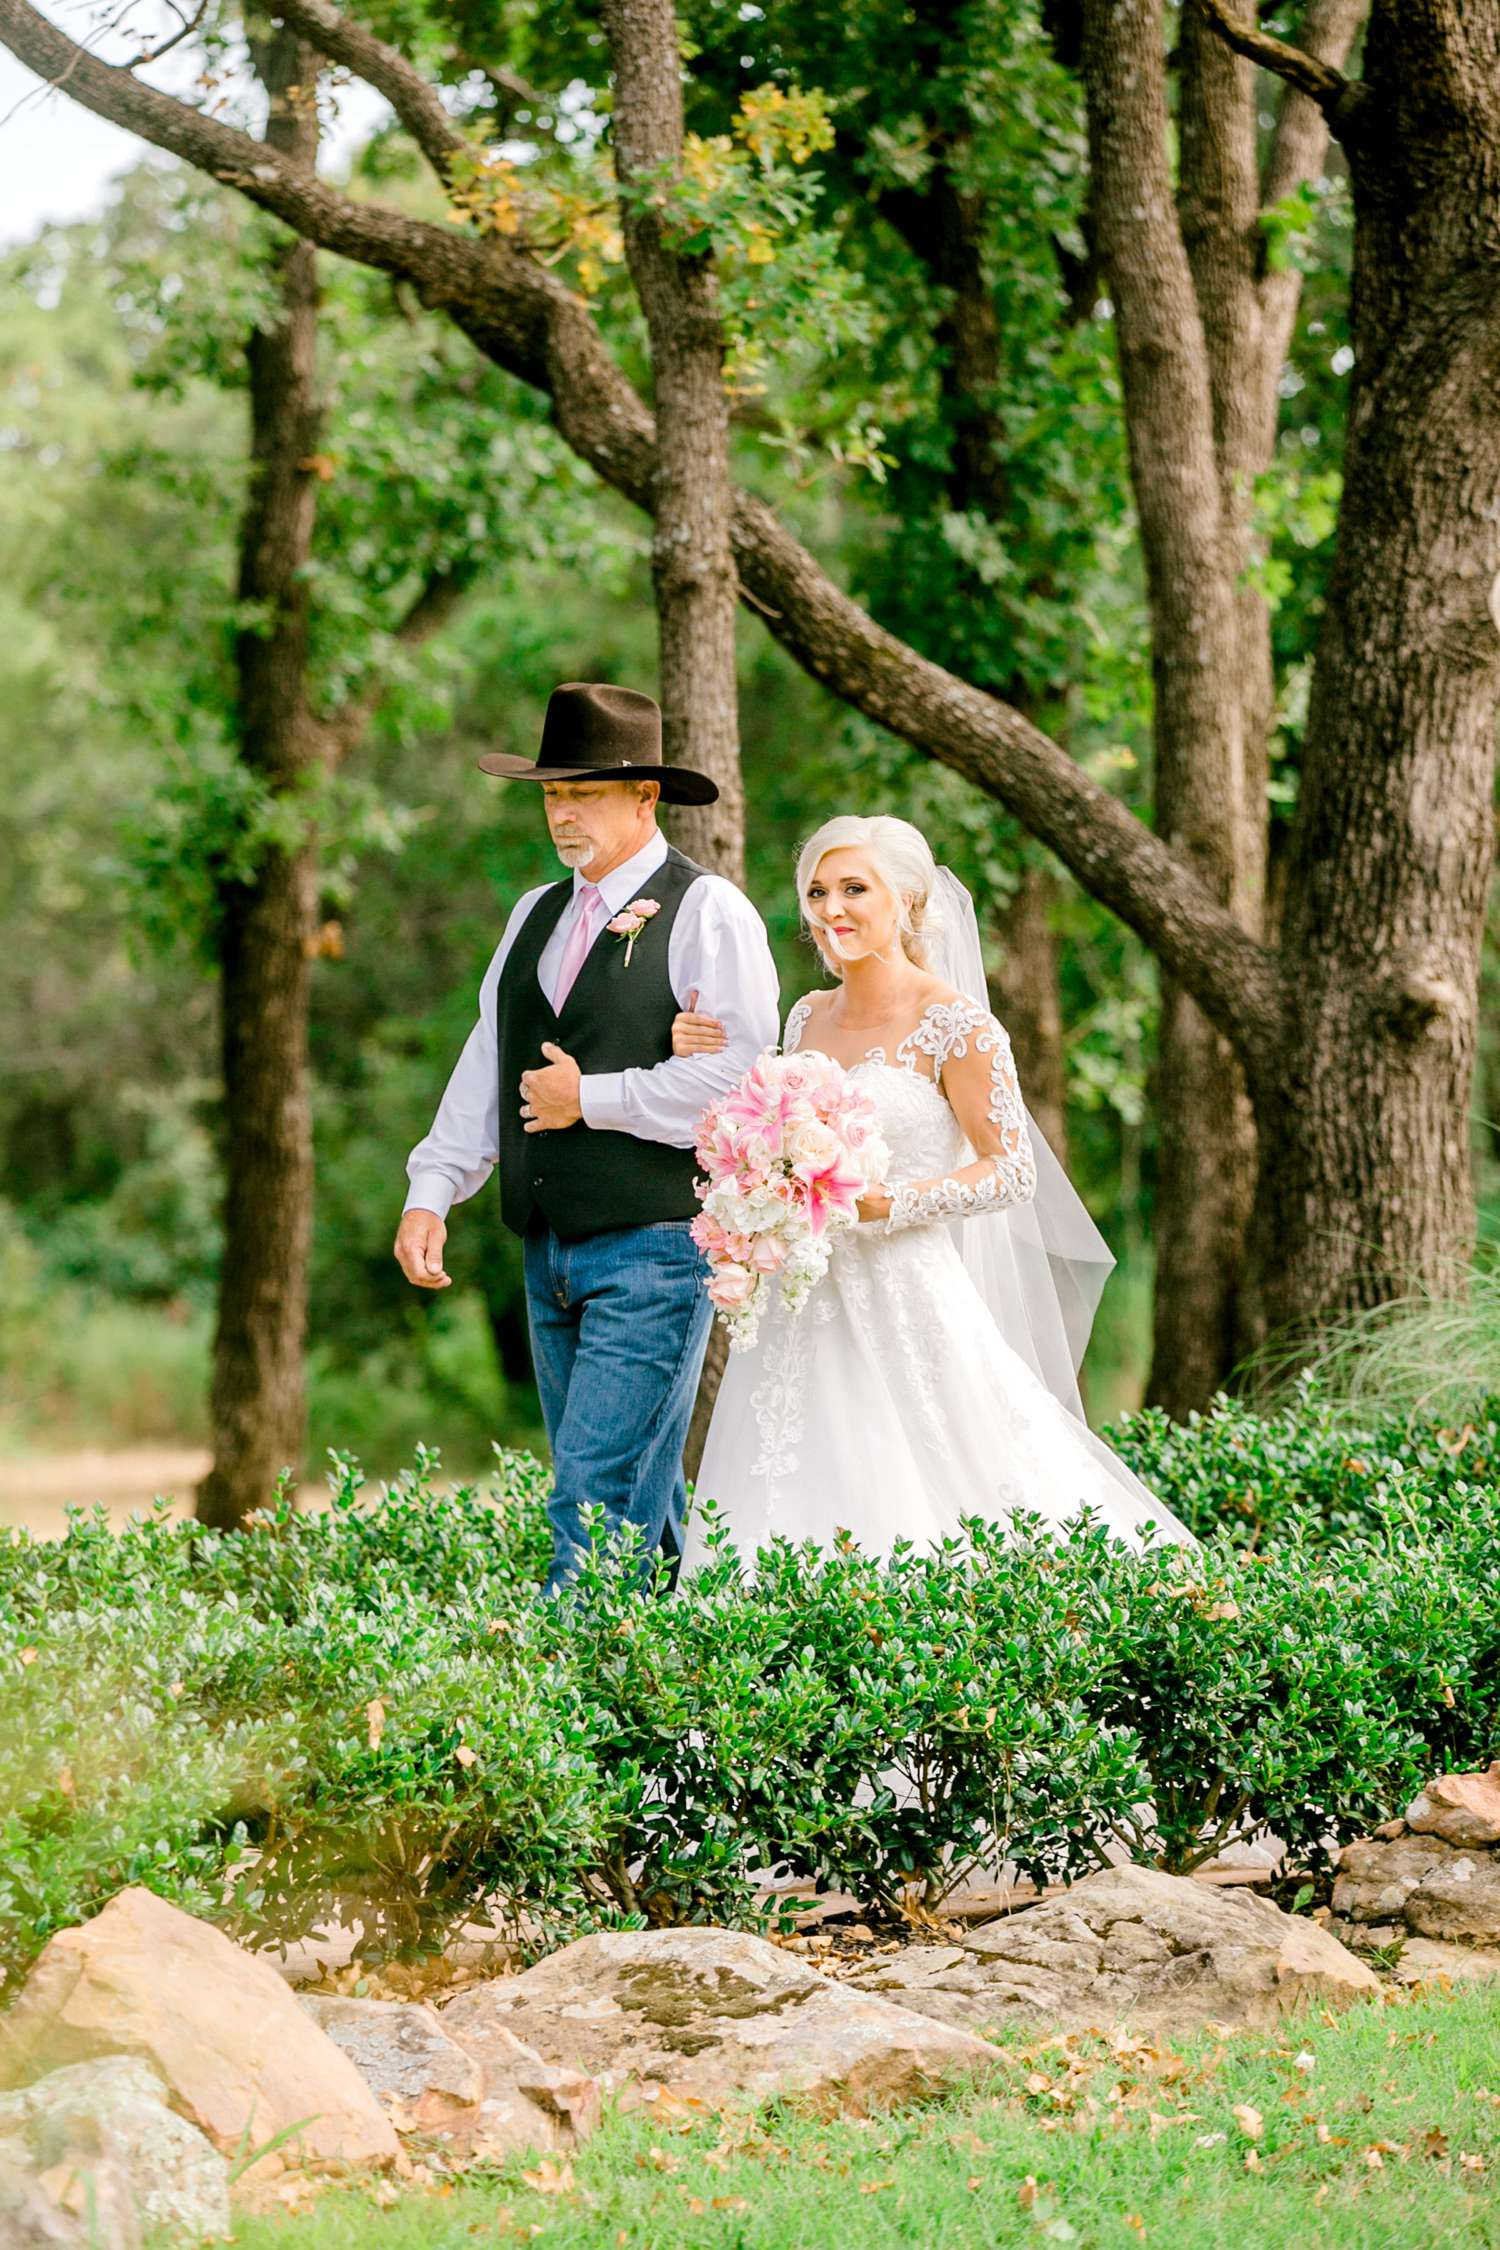 JESSICA+LYLE+NEEL+THE_SPRINGS_EVENTS_WEDDING_OKLAHOMA_ALLEEJ_PHOTOGRAPHER_0049.jpg